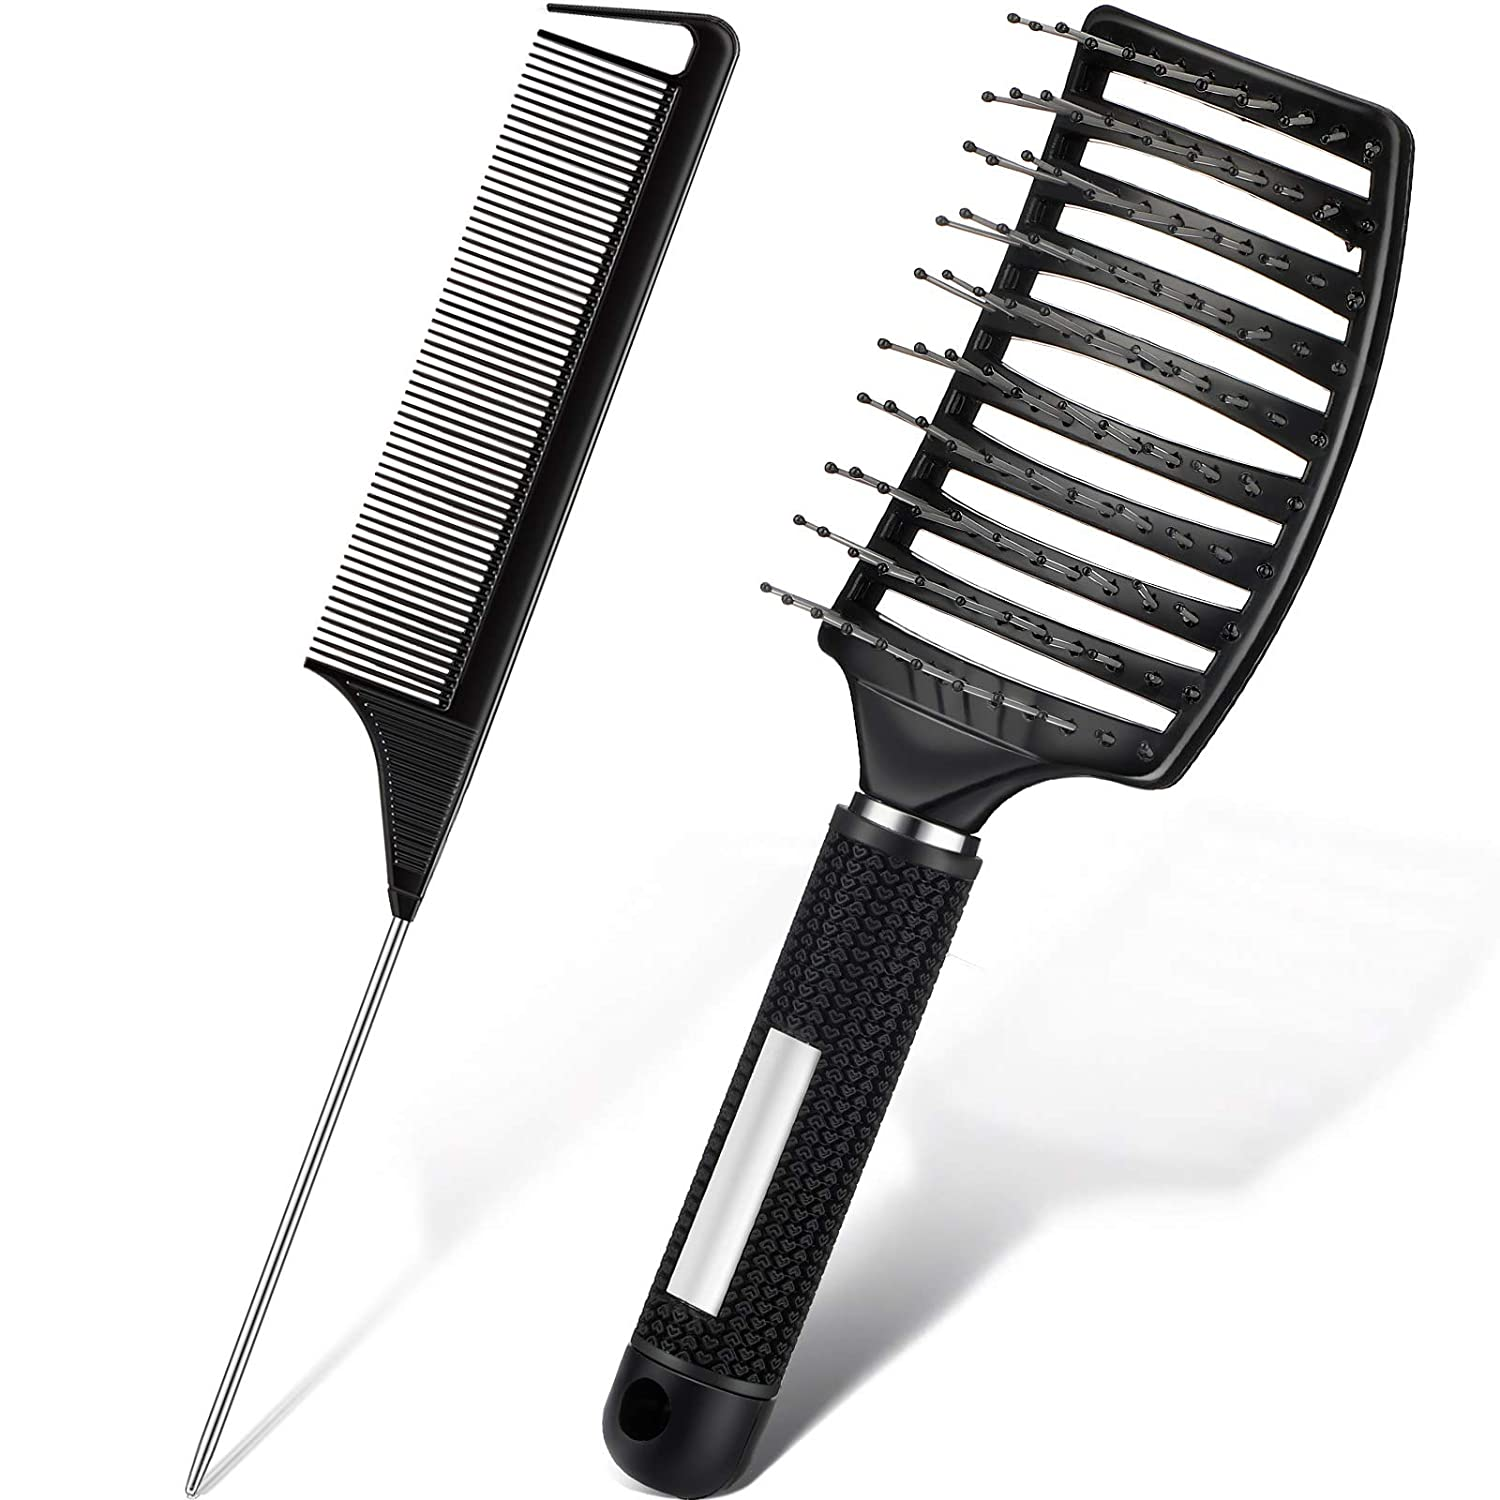 2 Pieces Detangling Massage Hair Brushes Vented Curved Hair Brush Vented Styling Hair Brush Vented Hair Comb and Metal Parting Fine Tooth Comb Rat Tail Comb for Wet Hair and Fast Blow Drying